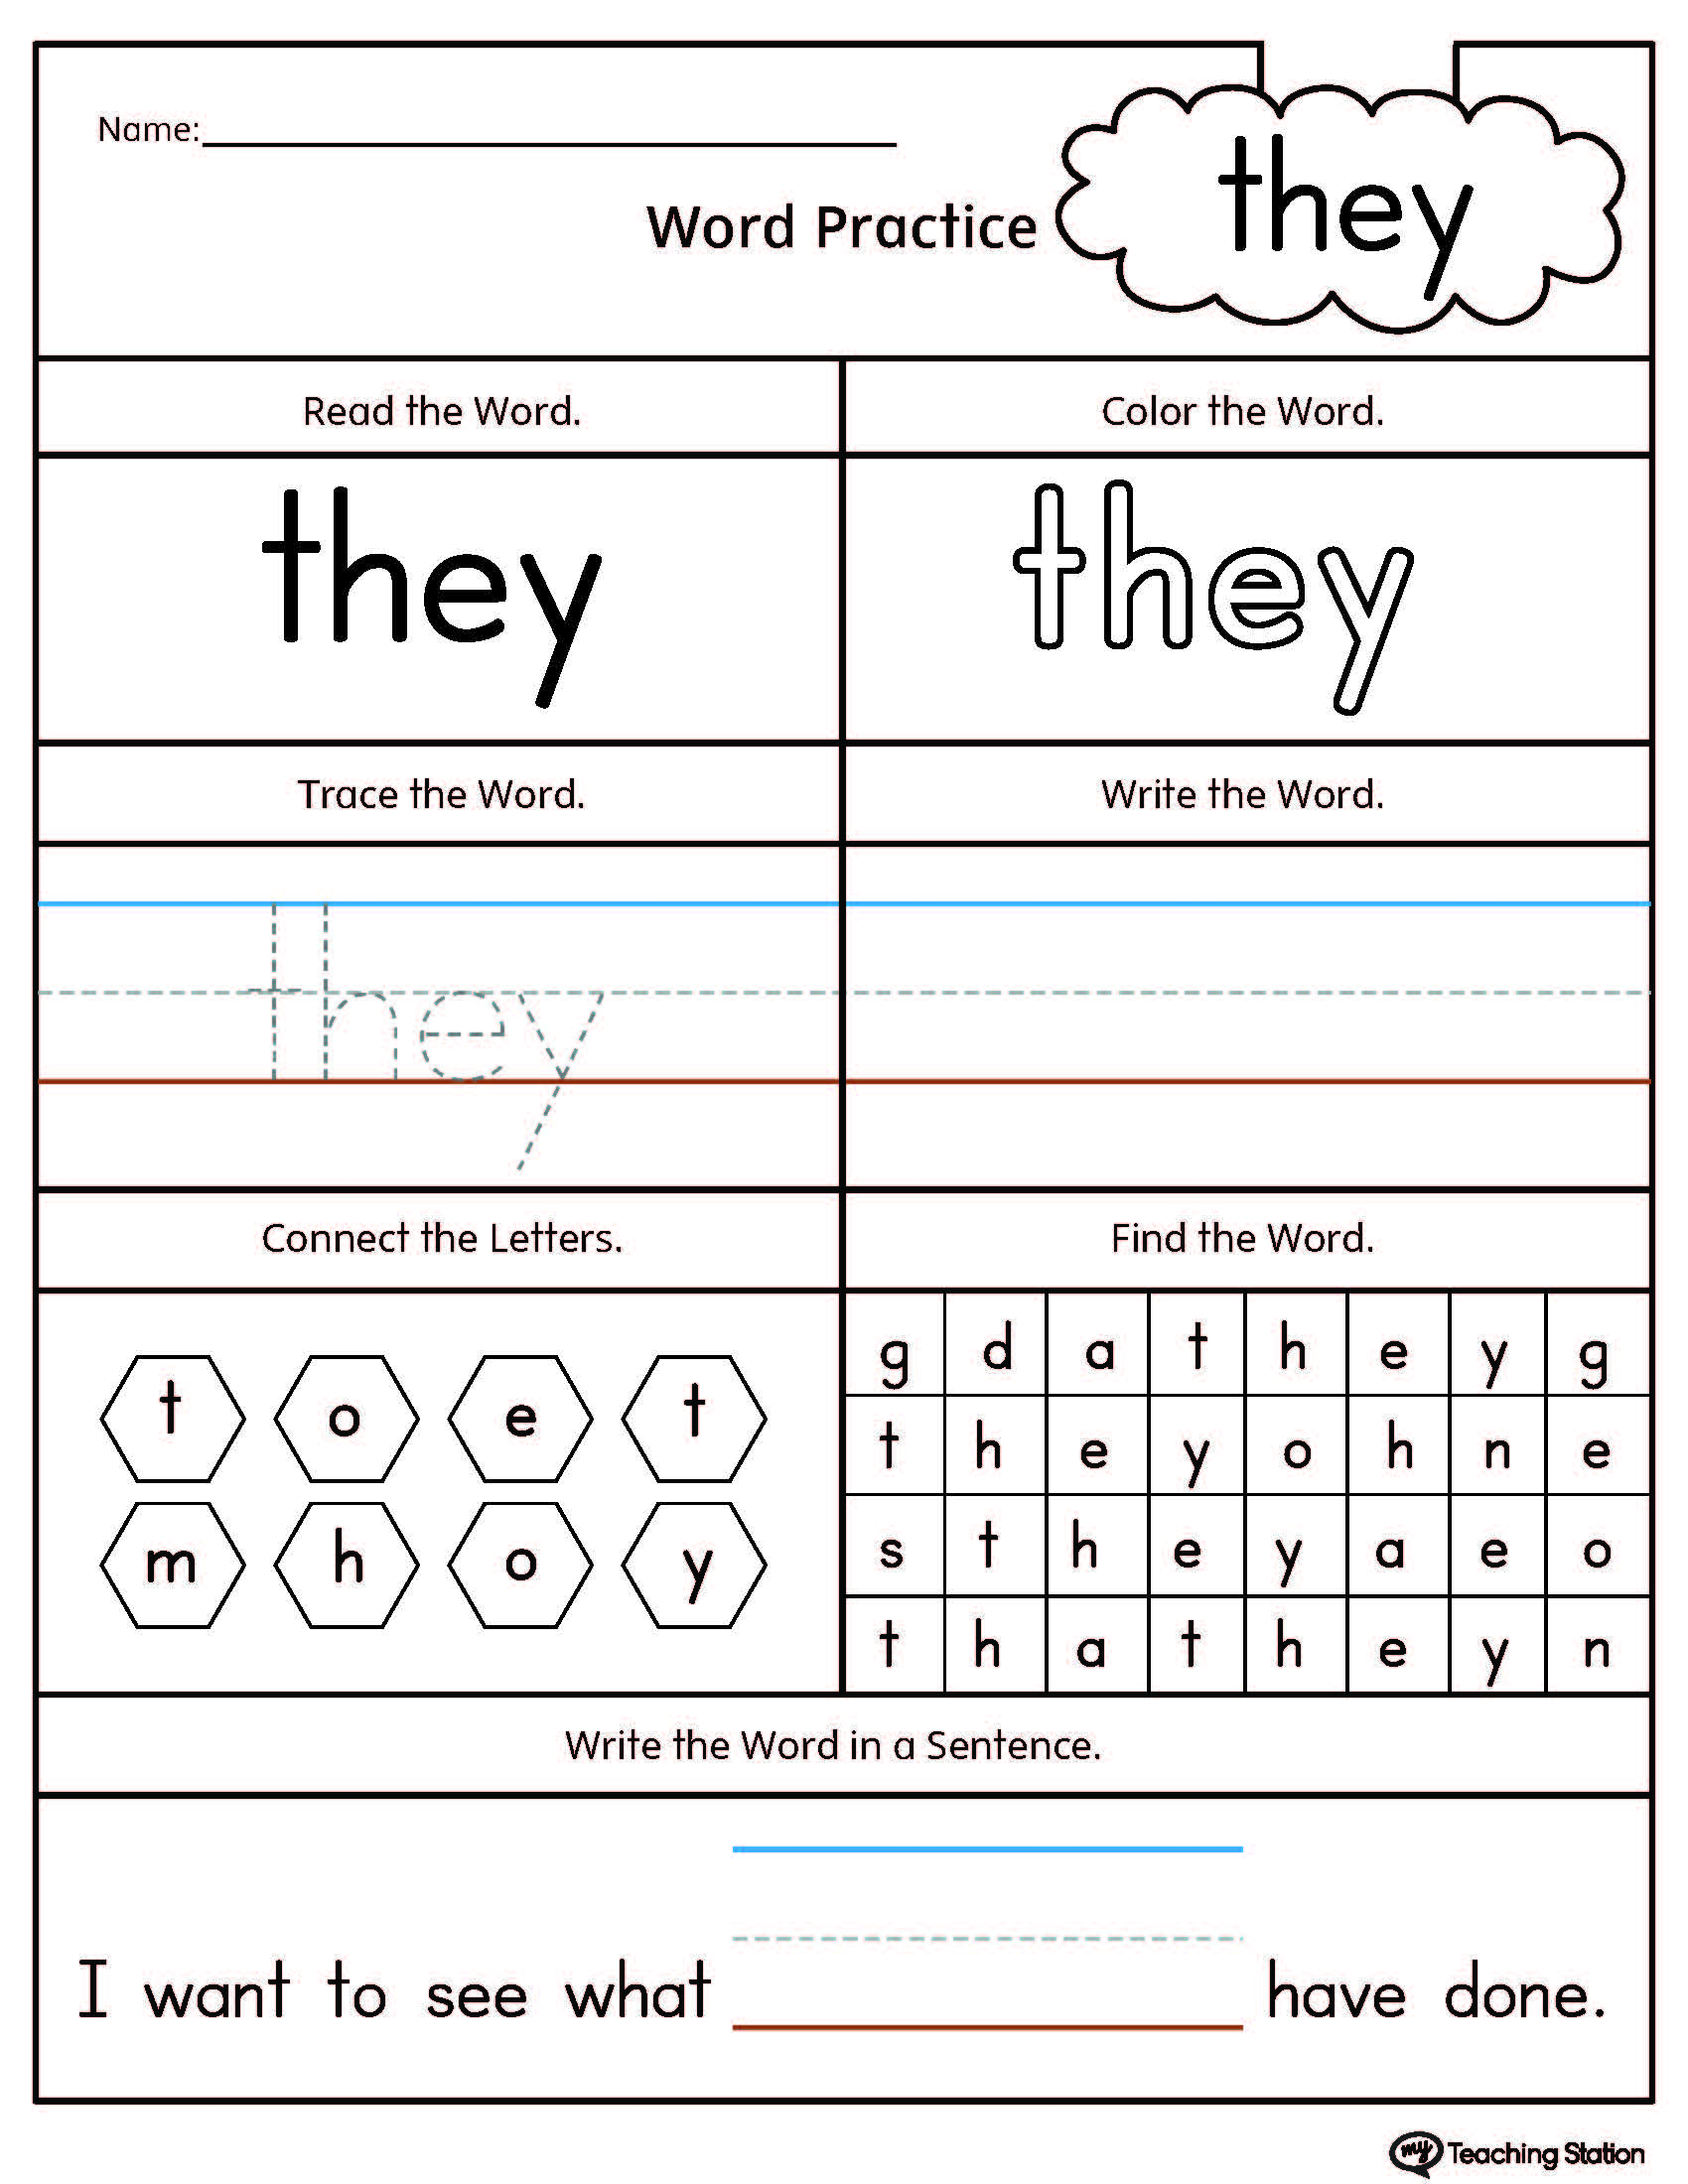 high frequency word they printable worksheet. Black Bedroom Furniture Sets. Home Design Ideas